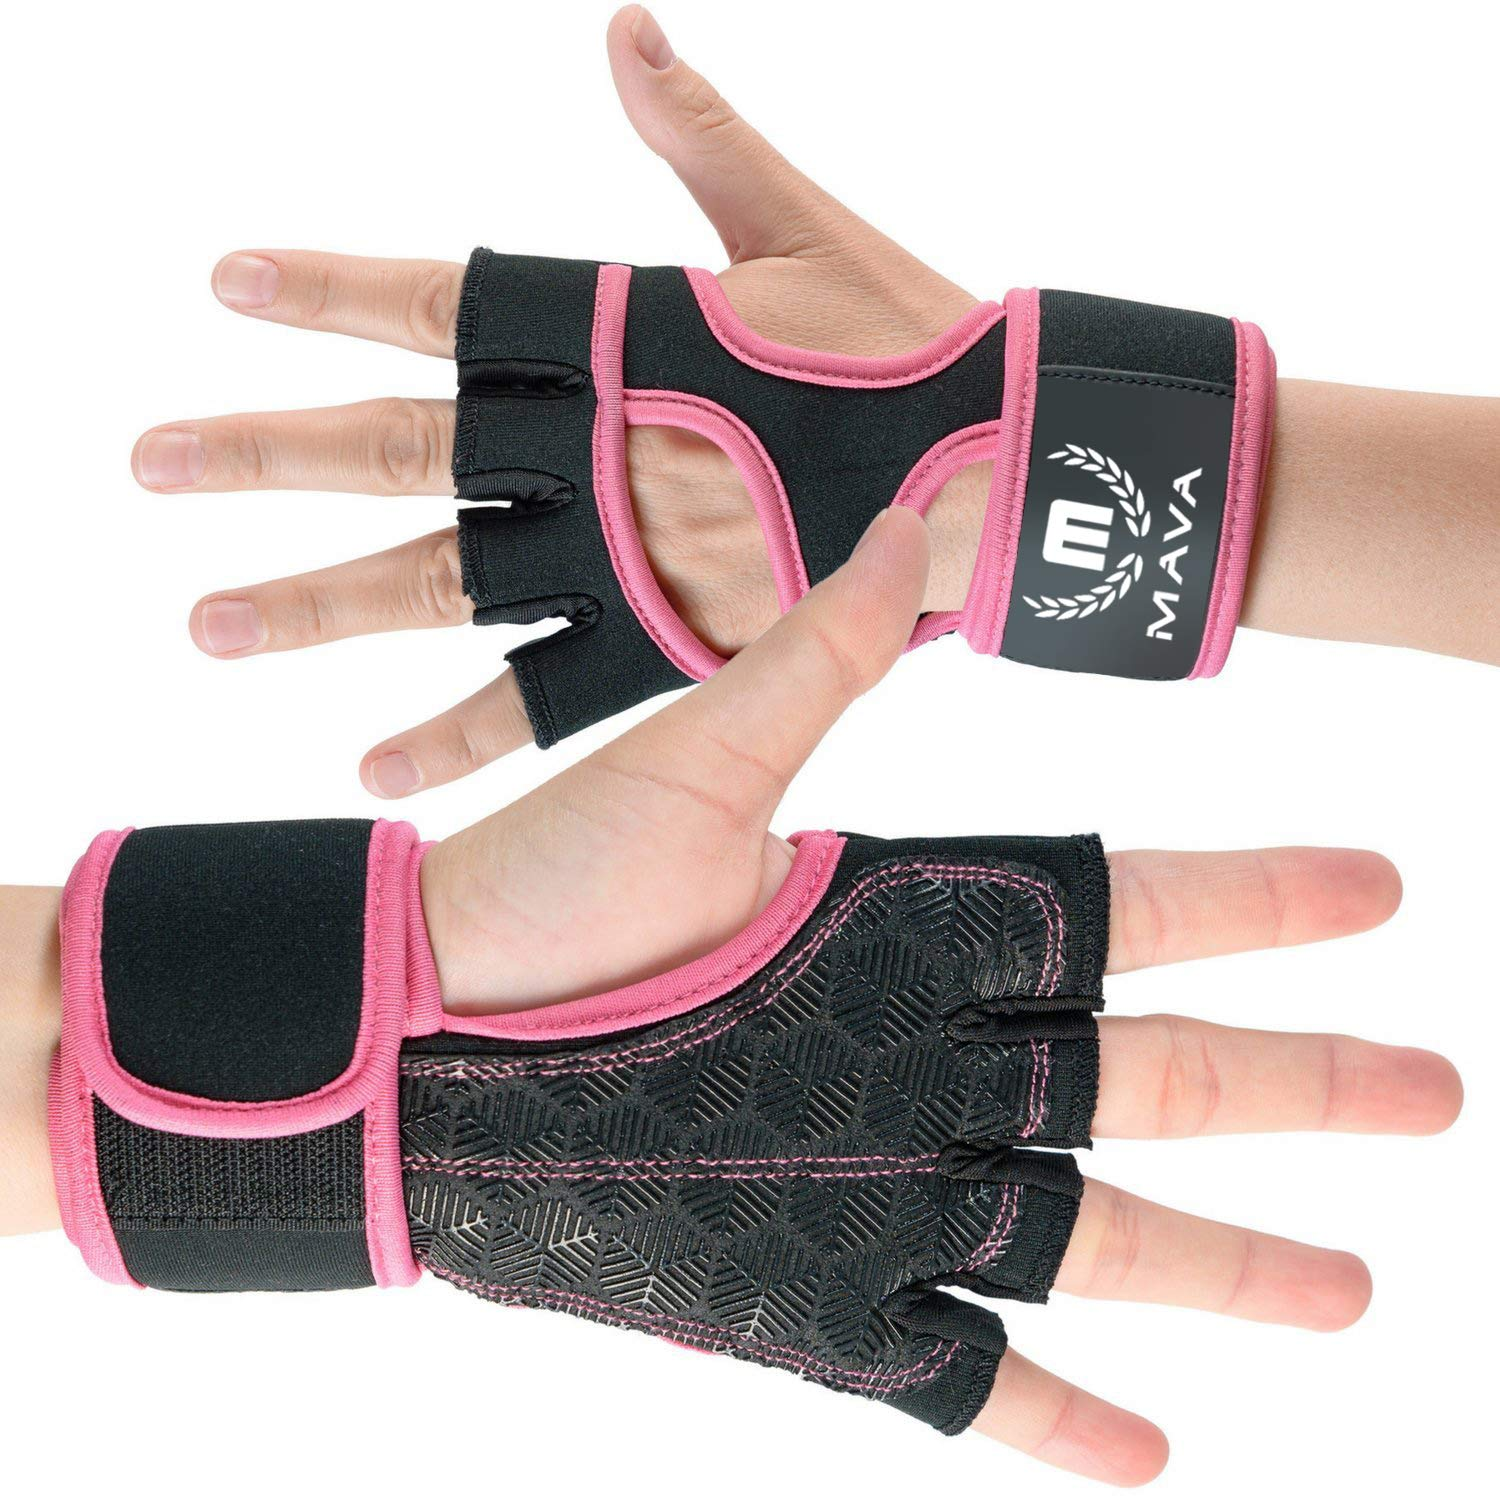 1189f632e5 Cross Training Gloves with Wrist Support for Gym Workouts Silicone Padded  Workout Hand Grips Against Calluses ...